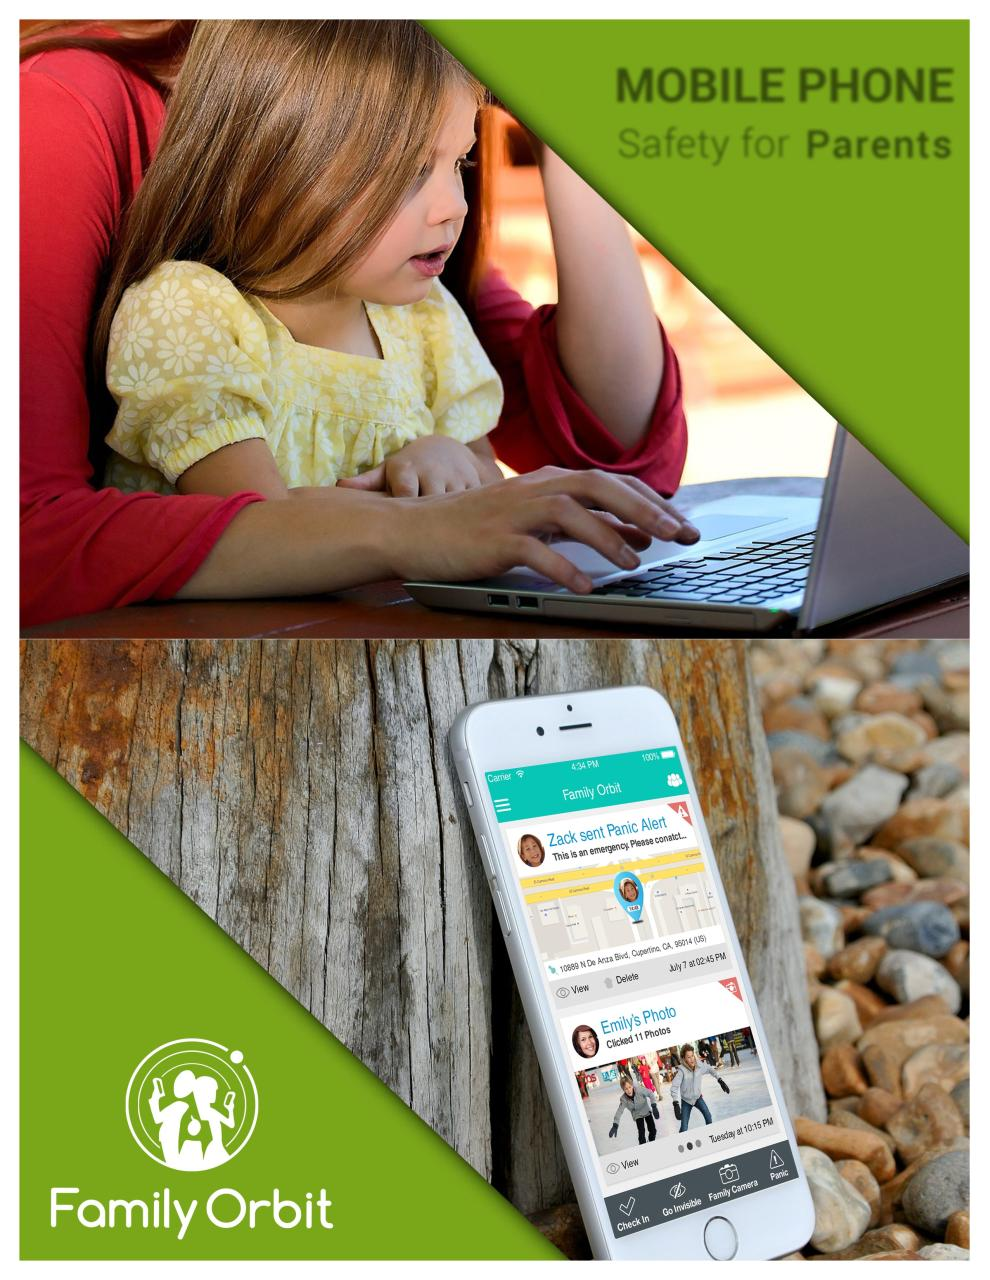 Mobile Phone Safety Guide for Parents.pdf - page 1/26